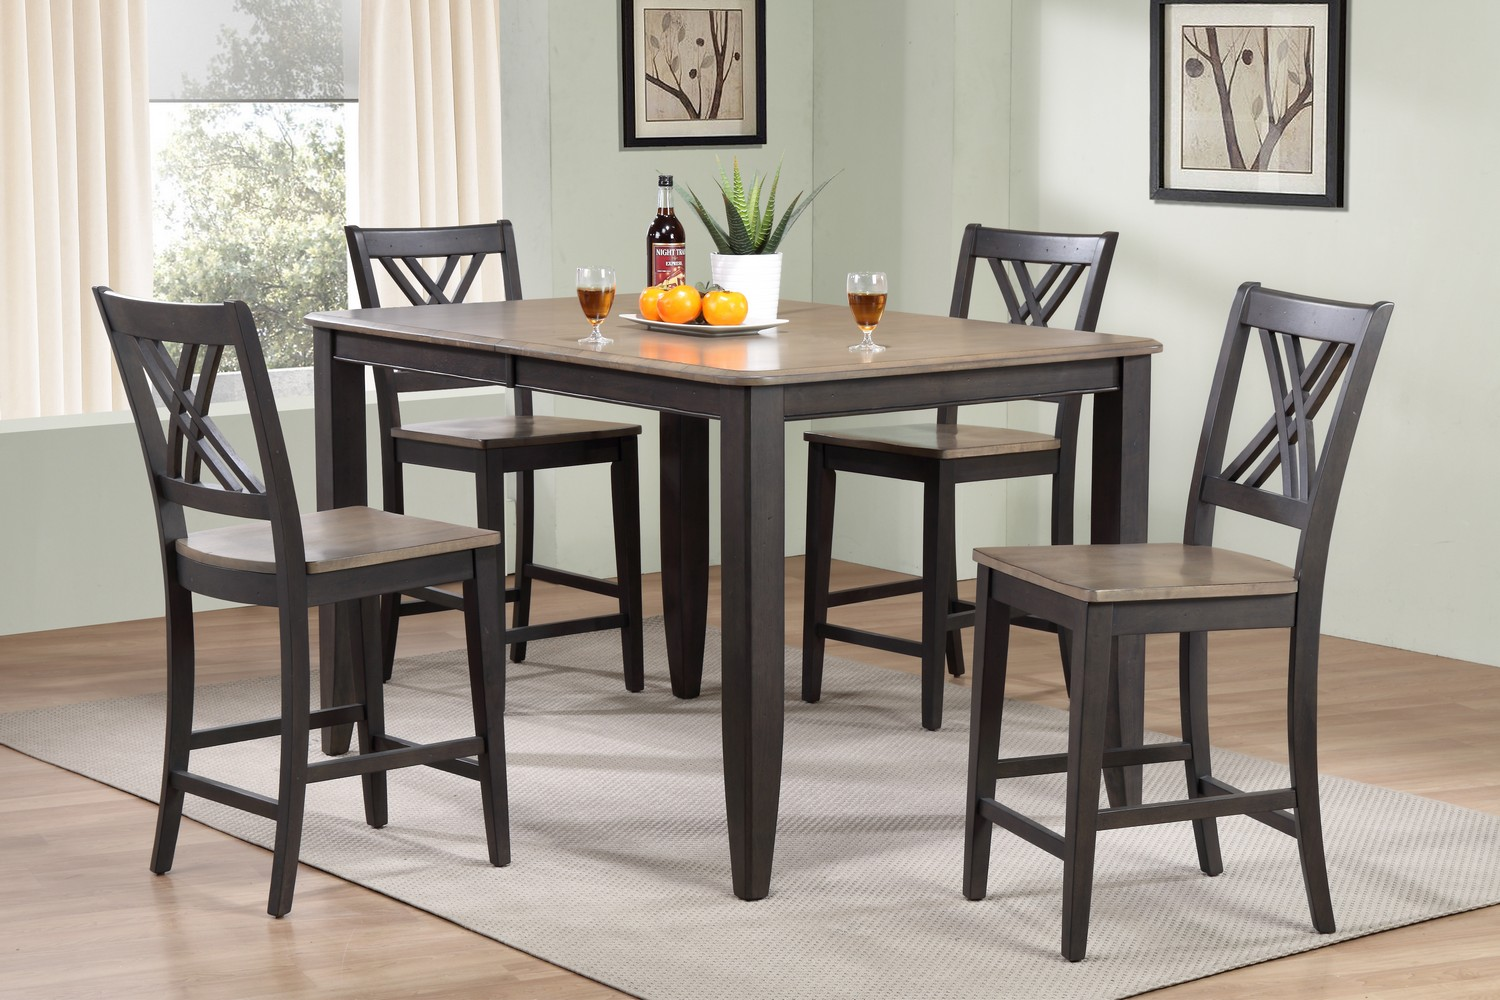 Iconic Furniture RT78 Grey Stone/Black Stone Double X- Back Counter Height Dining Set